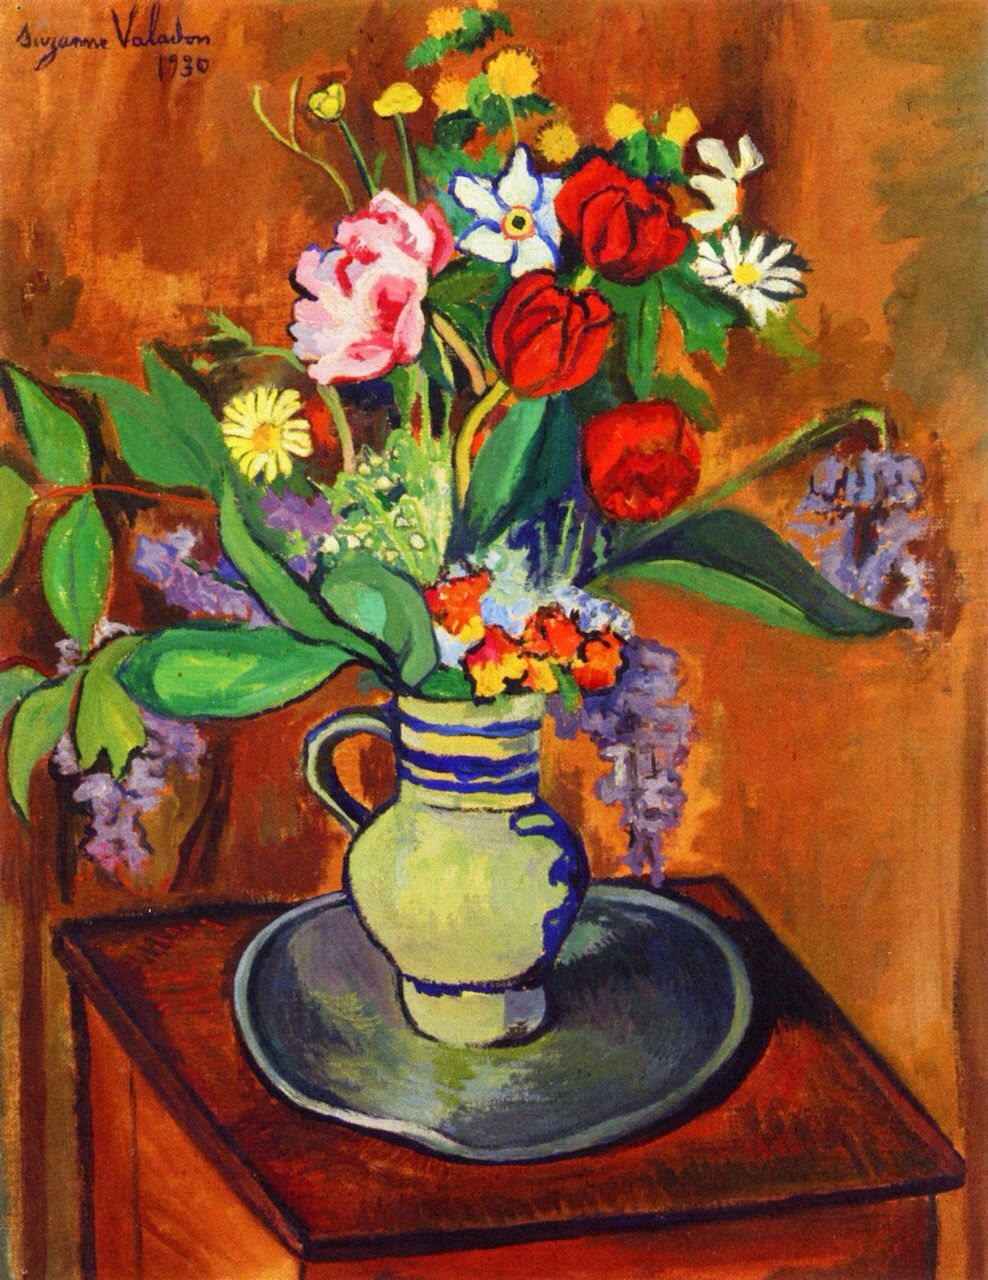 Suzanne valadon vase of flowers art i appreciate pinterest blooming brushwork garden and still life flower paintings suzanne valadon reviewsmspy